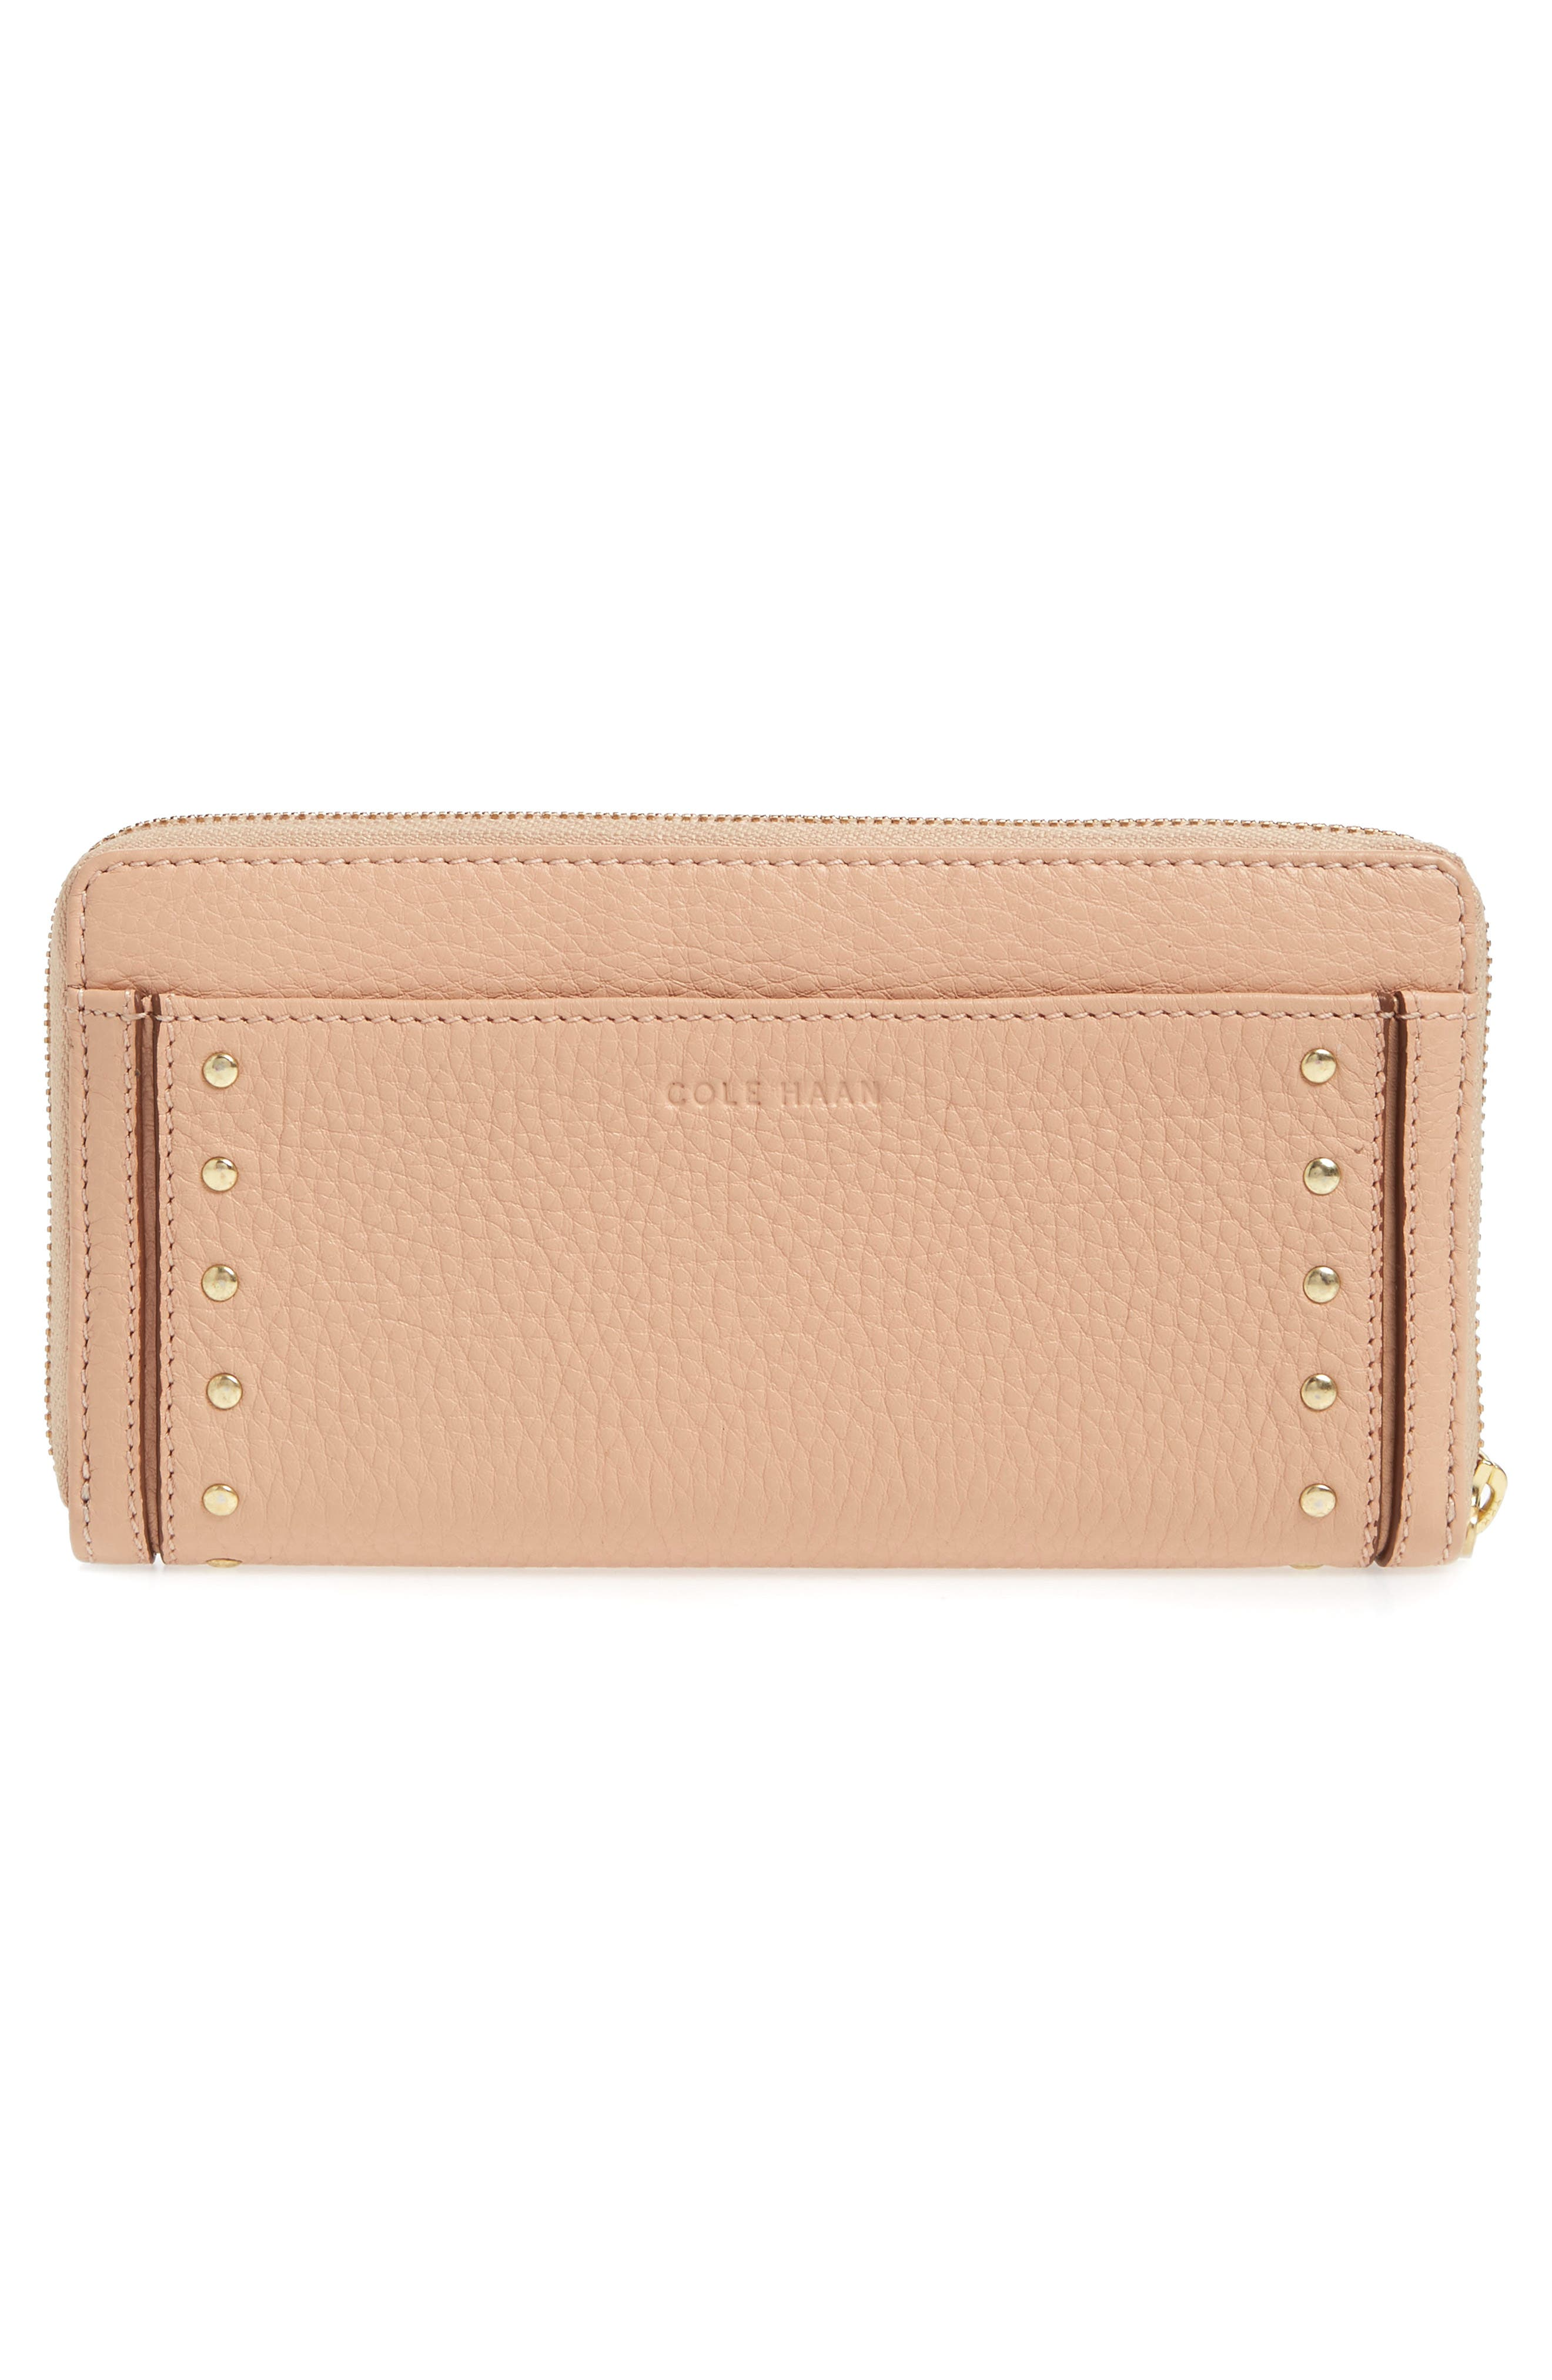 Cassidy Leather RFID Continental Zip Wallet,                             Alternate thumbnail 4, color,                             Nude